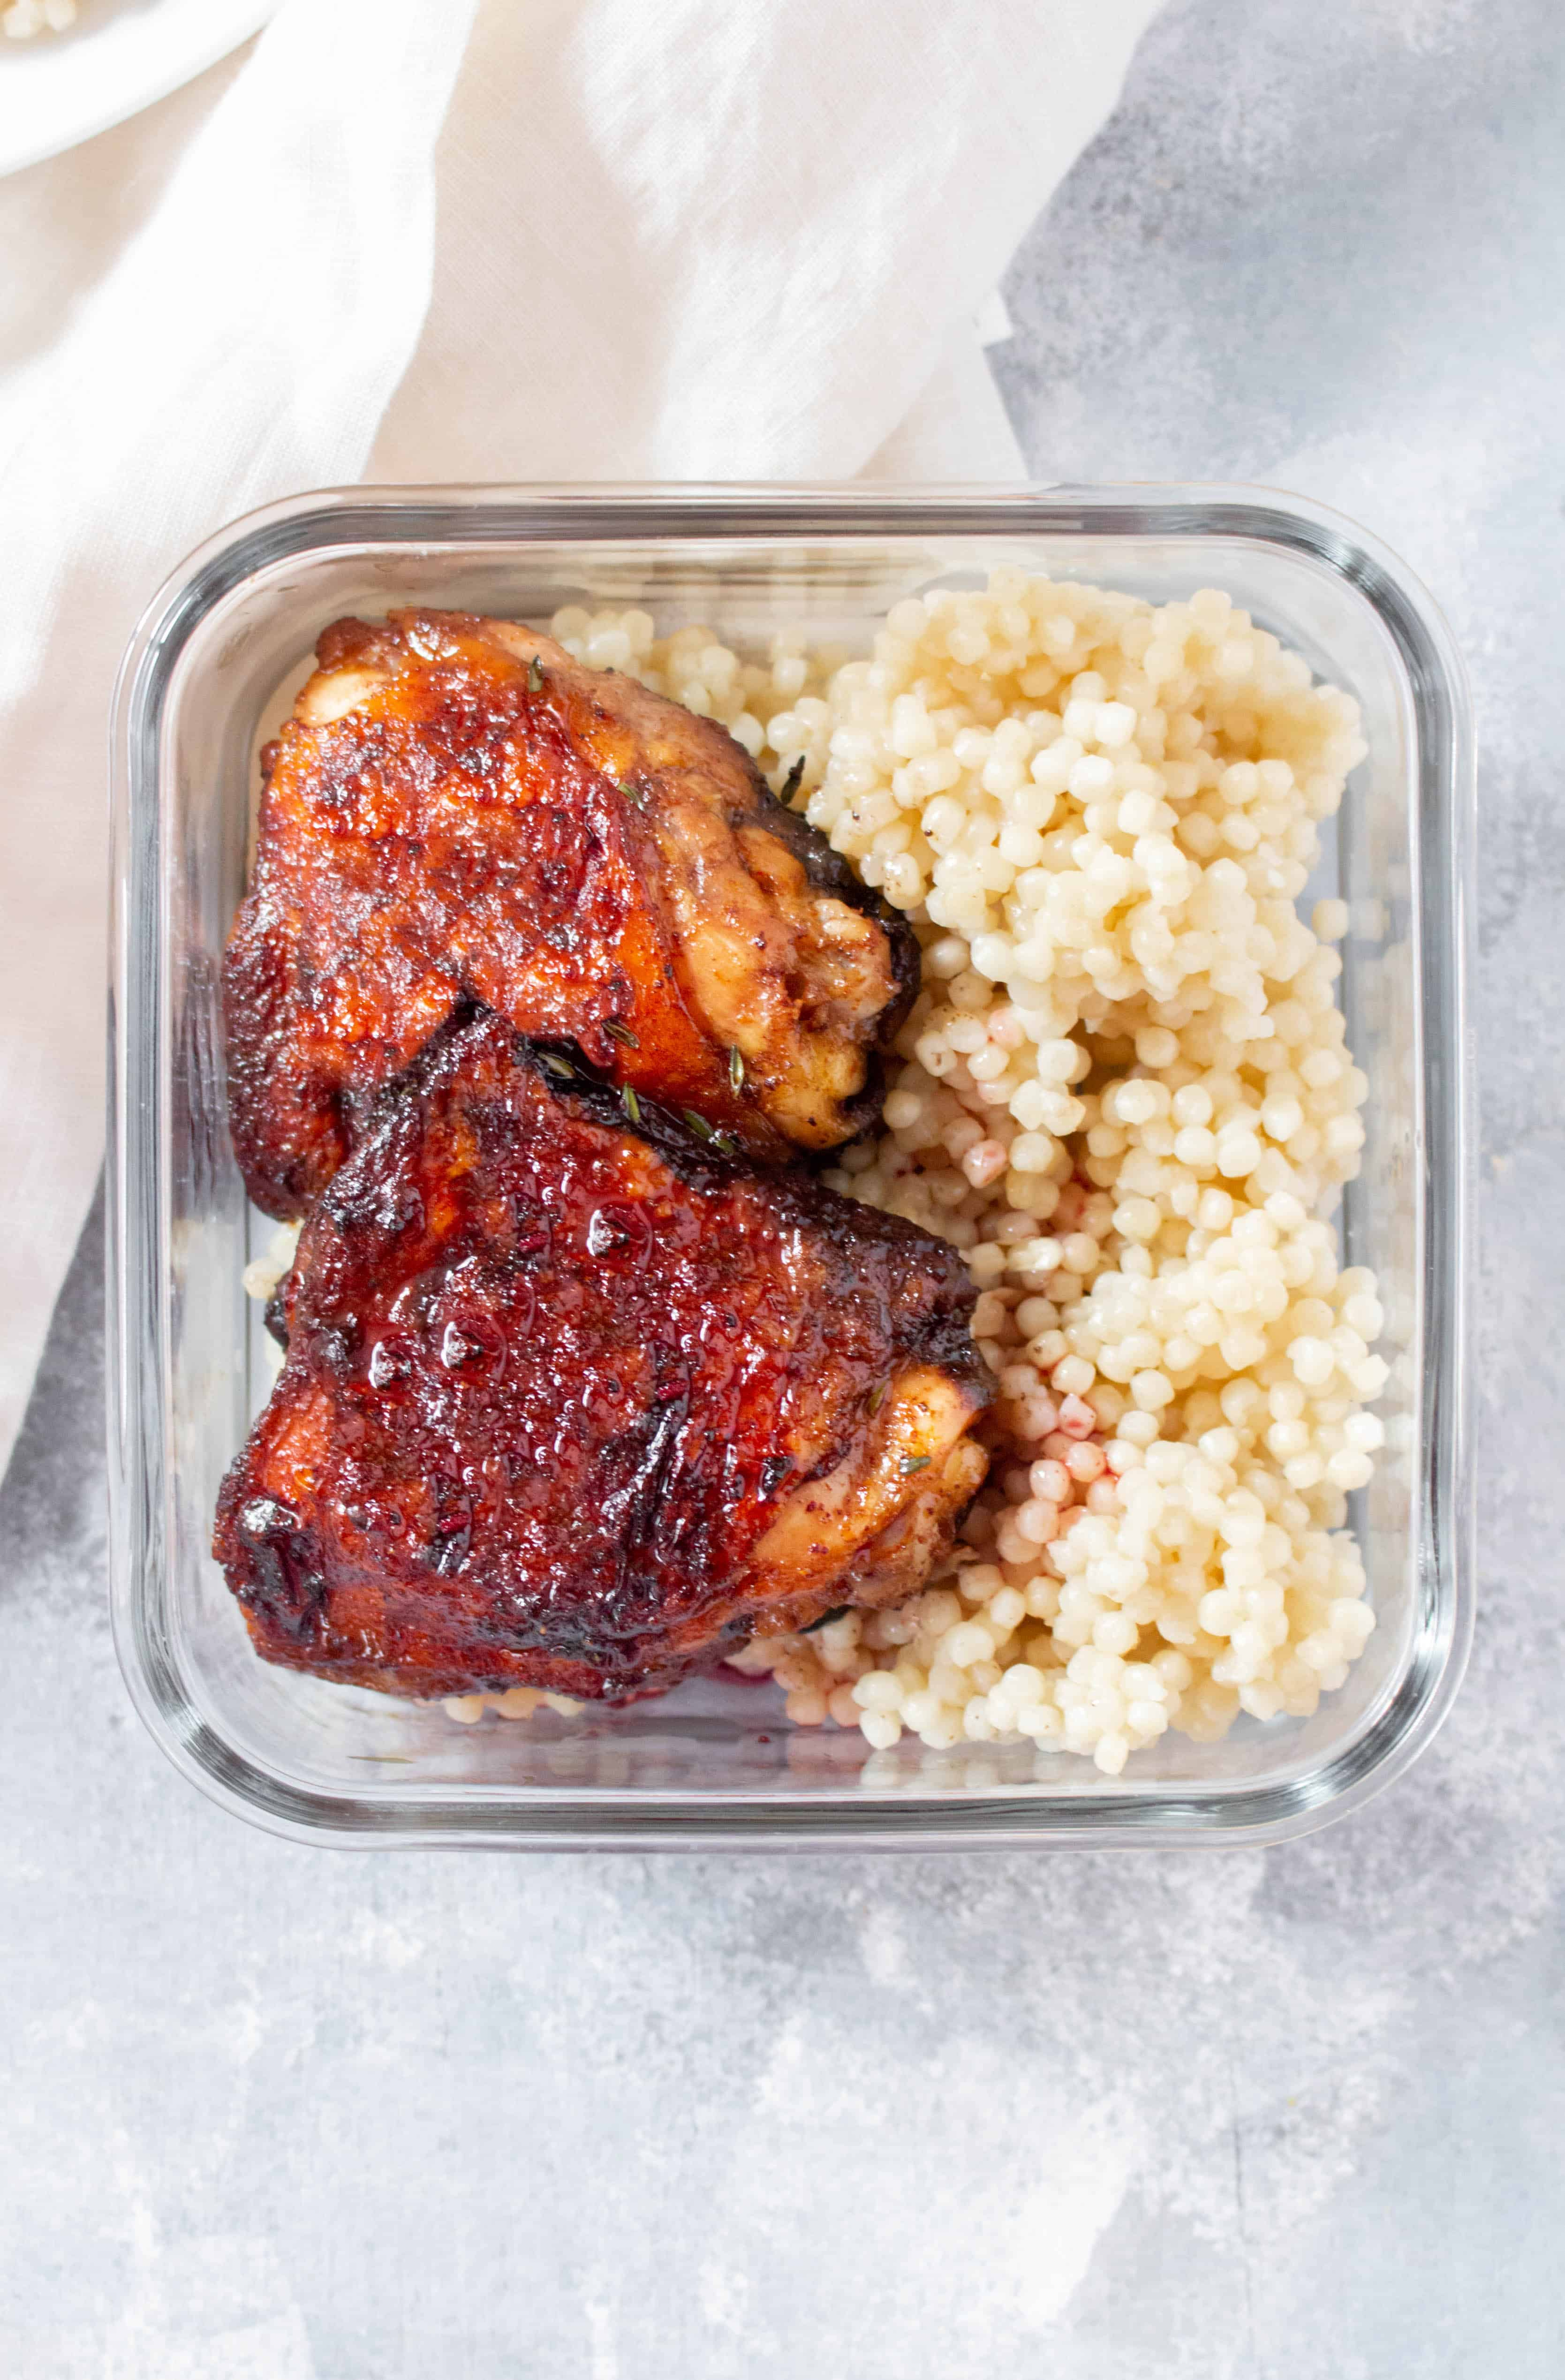 How To Make Pomegranate Chicken Thighs